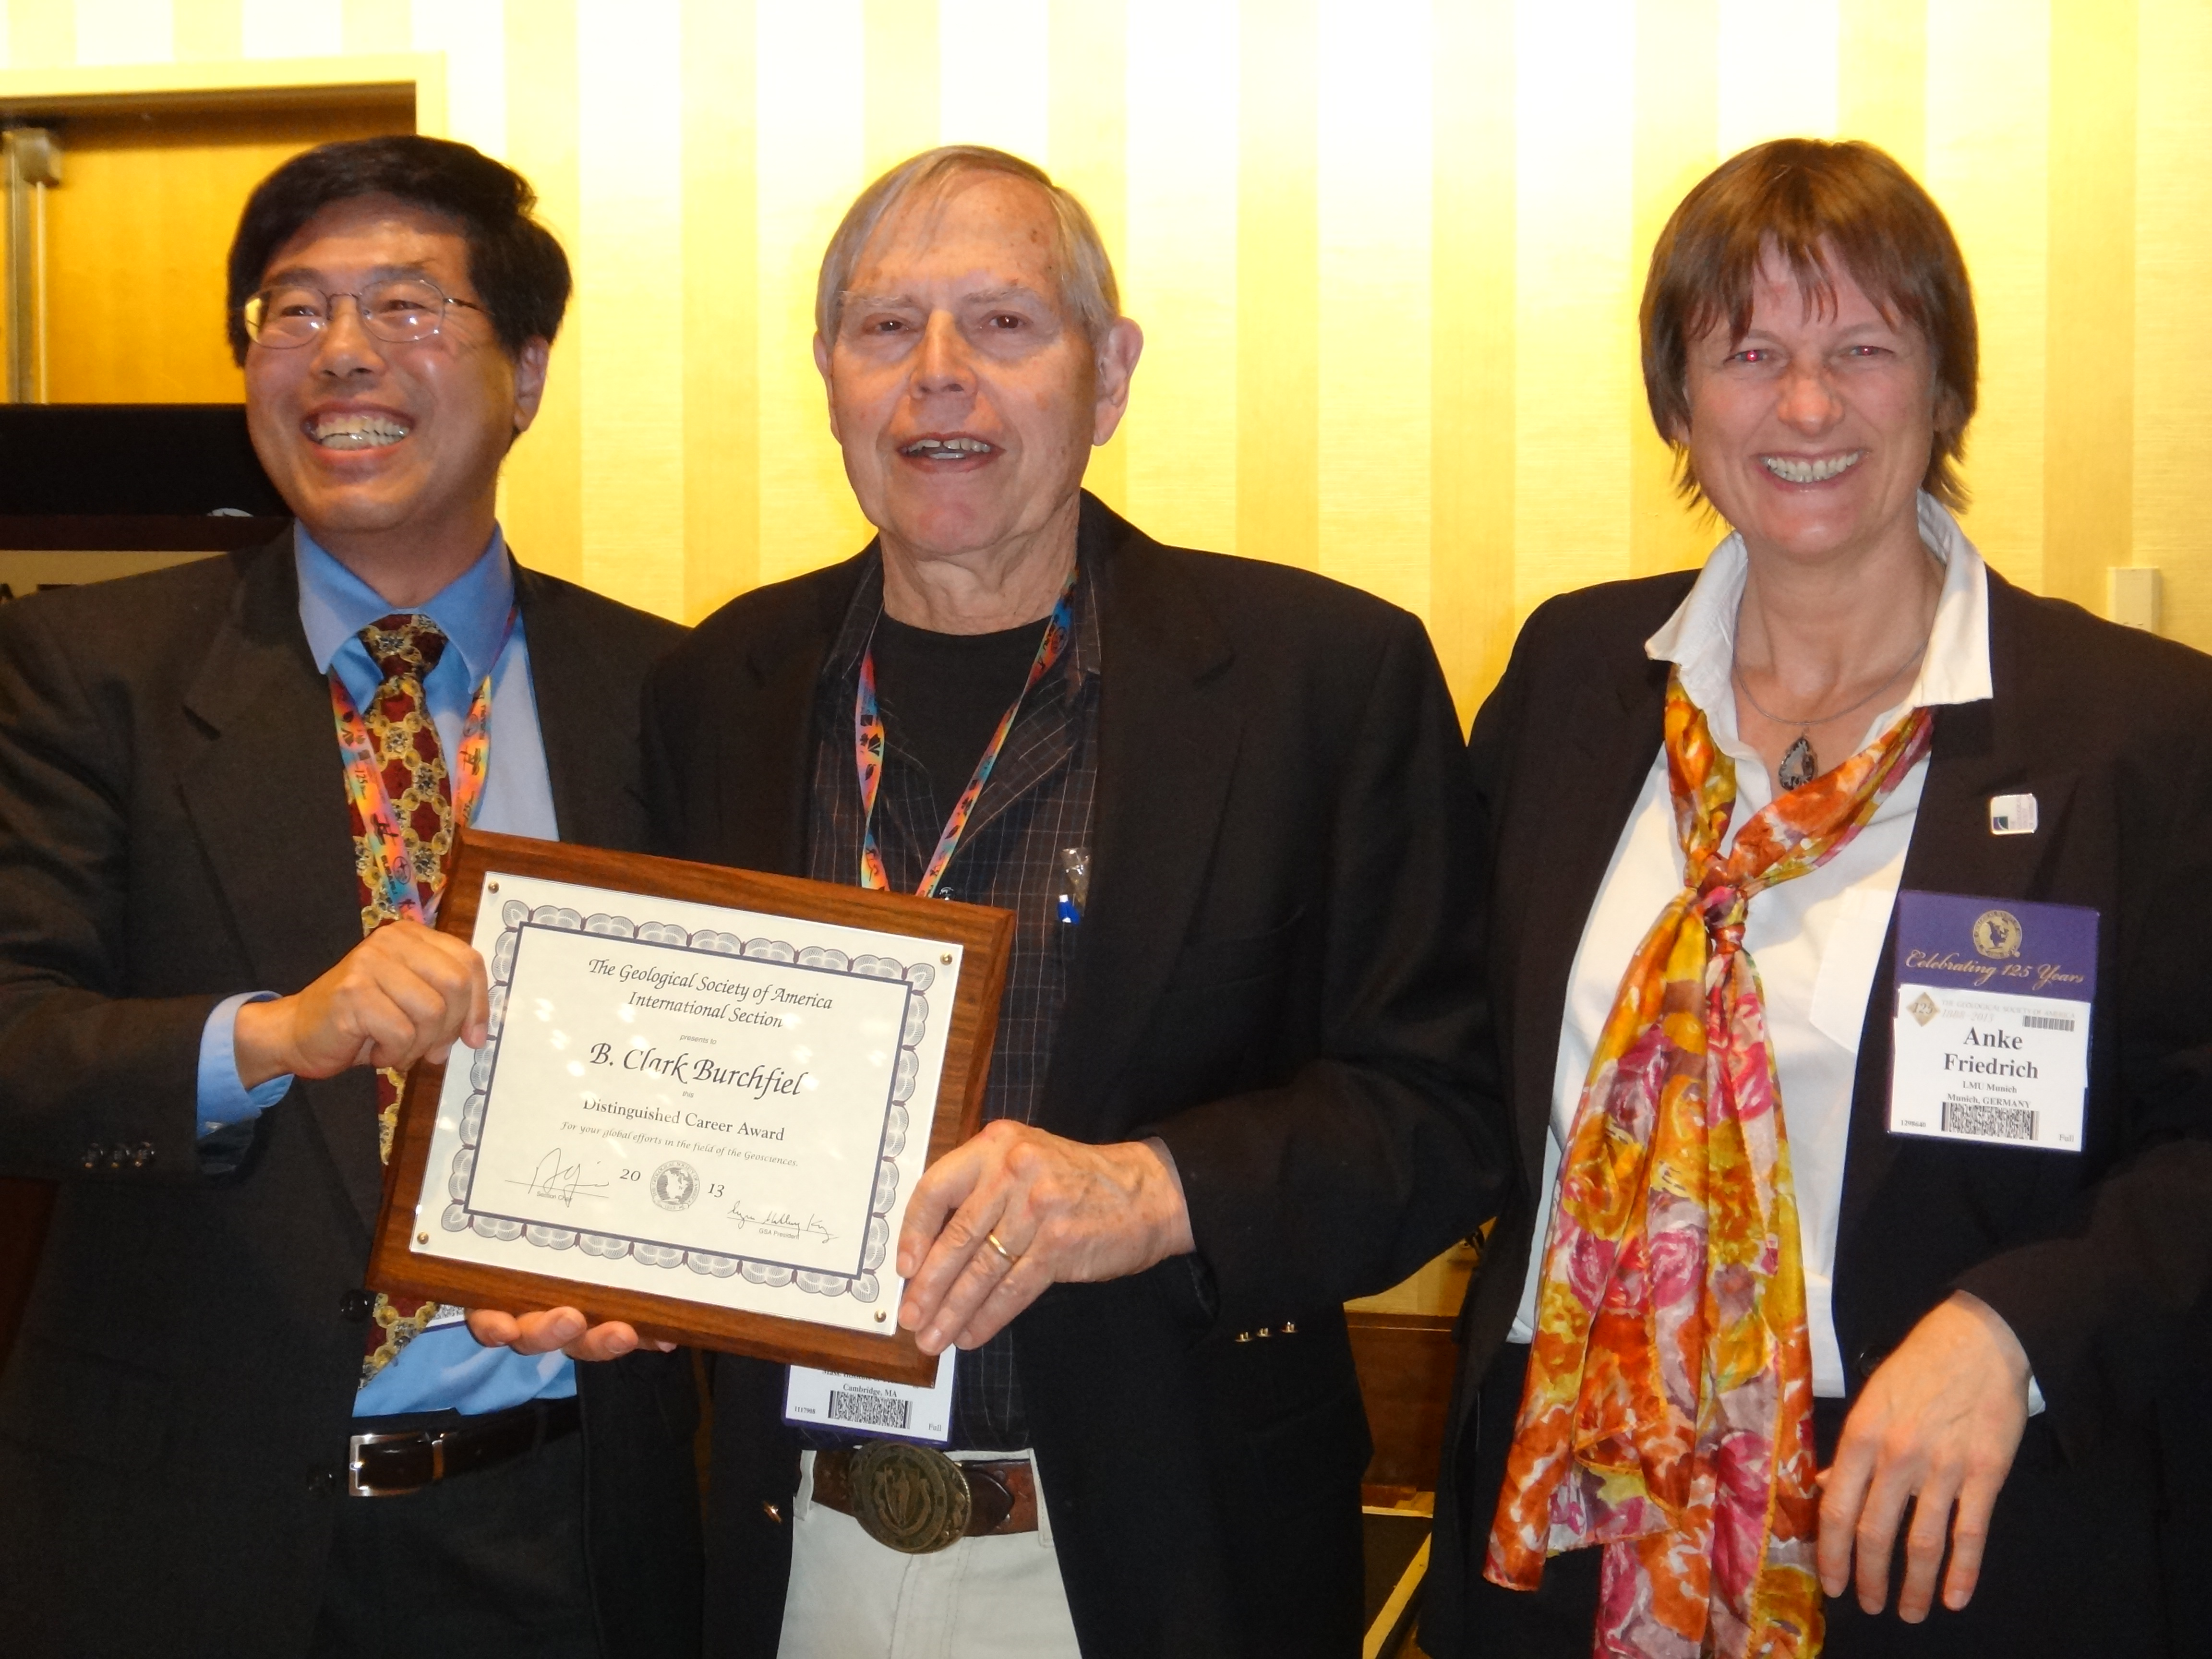 - dr-clark-burchfiel-centerreceiving-distinguished-career-award-from-dr-an-yin-gsa-is-chair-dr-anke-friedrich-incoming-gsa-is-chair-dsc02521-fig-3